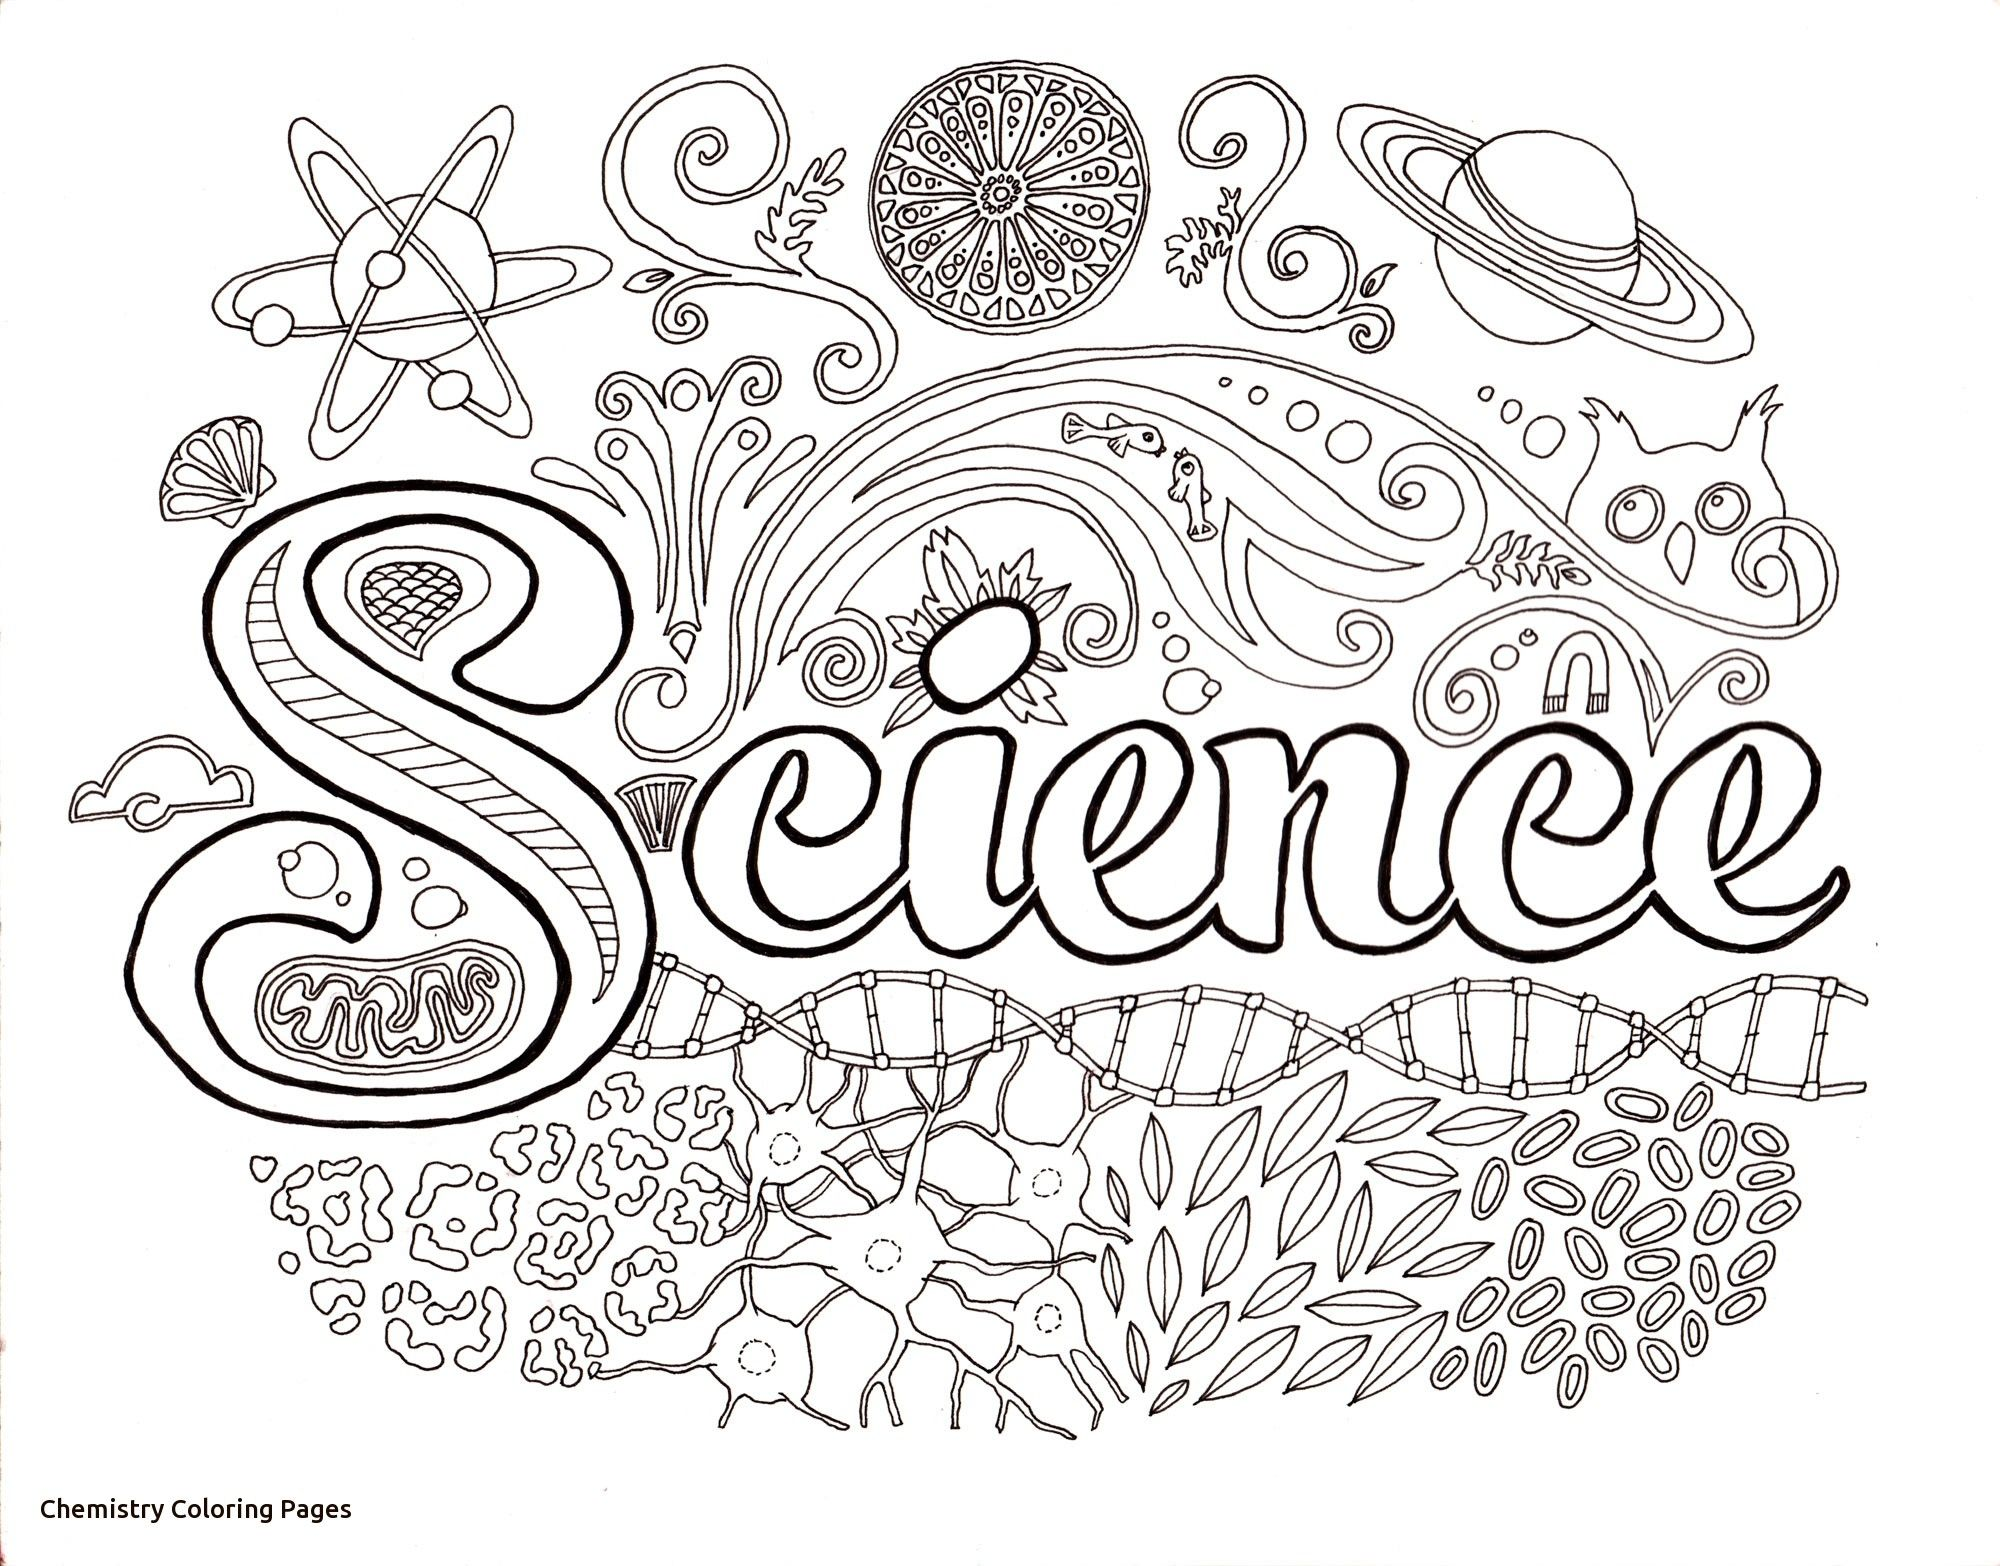 Value Chemistry Coloring Pages Soar Free Printable Science